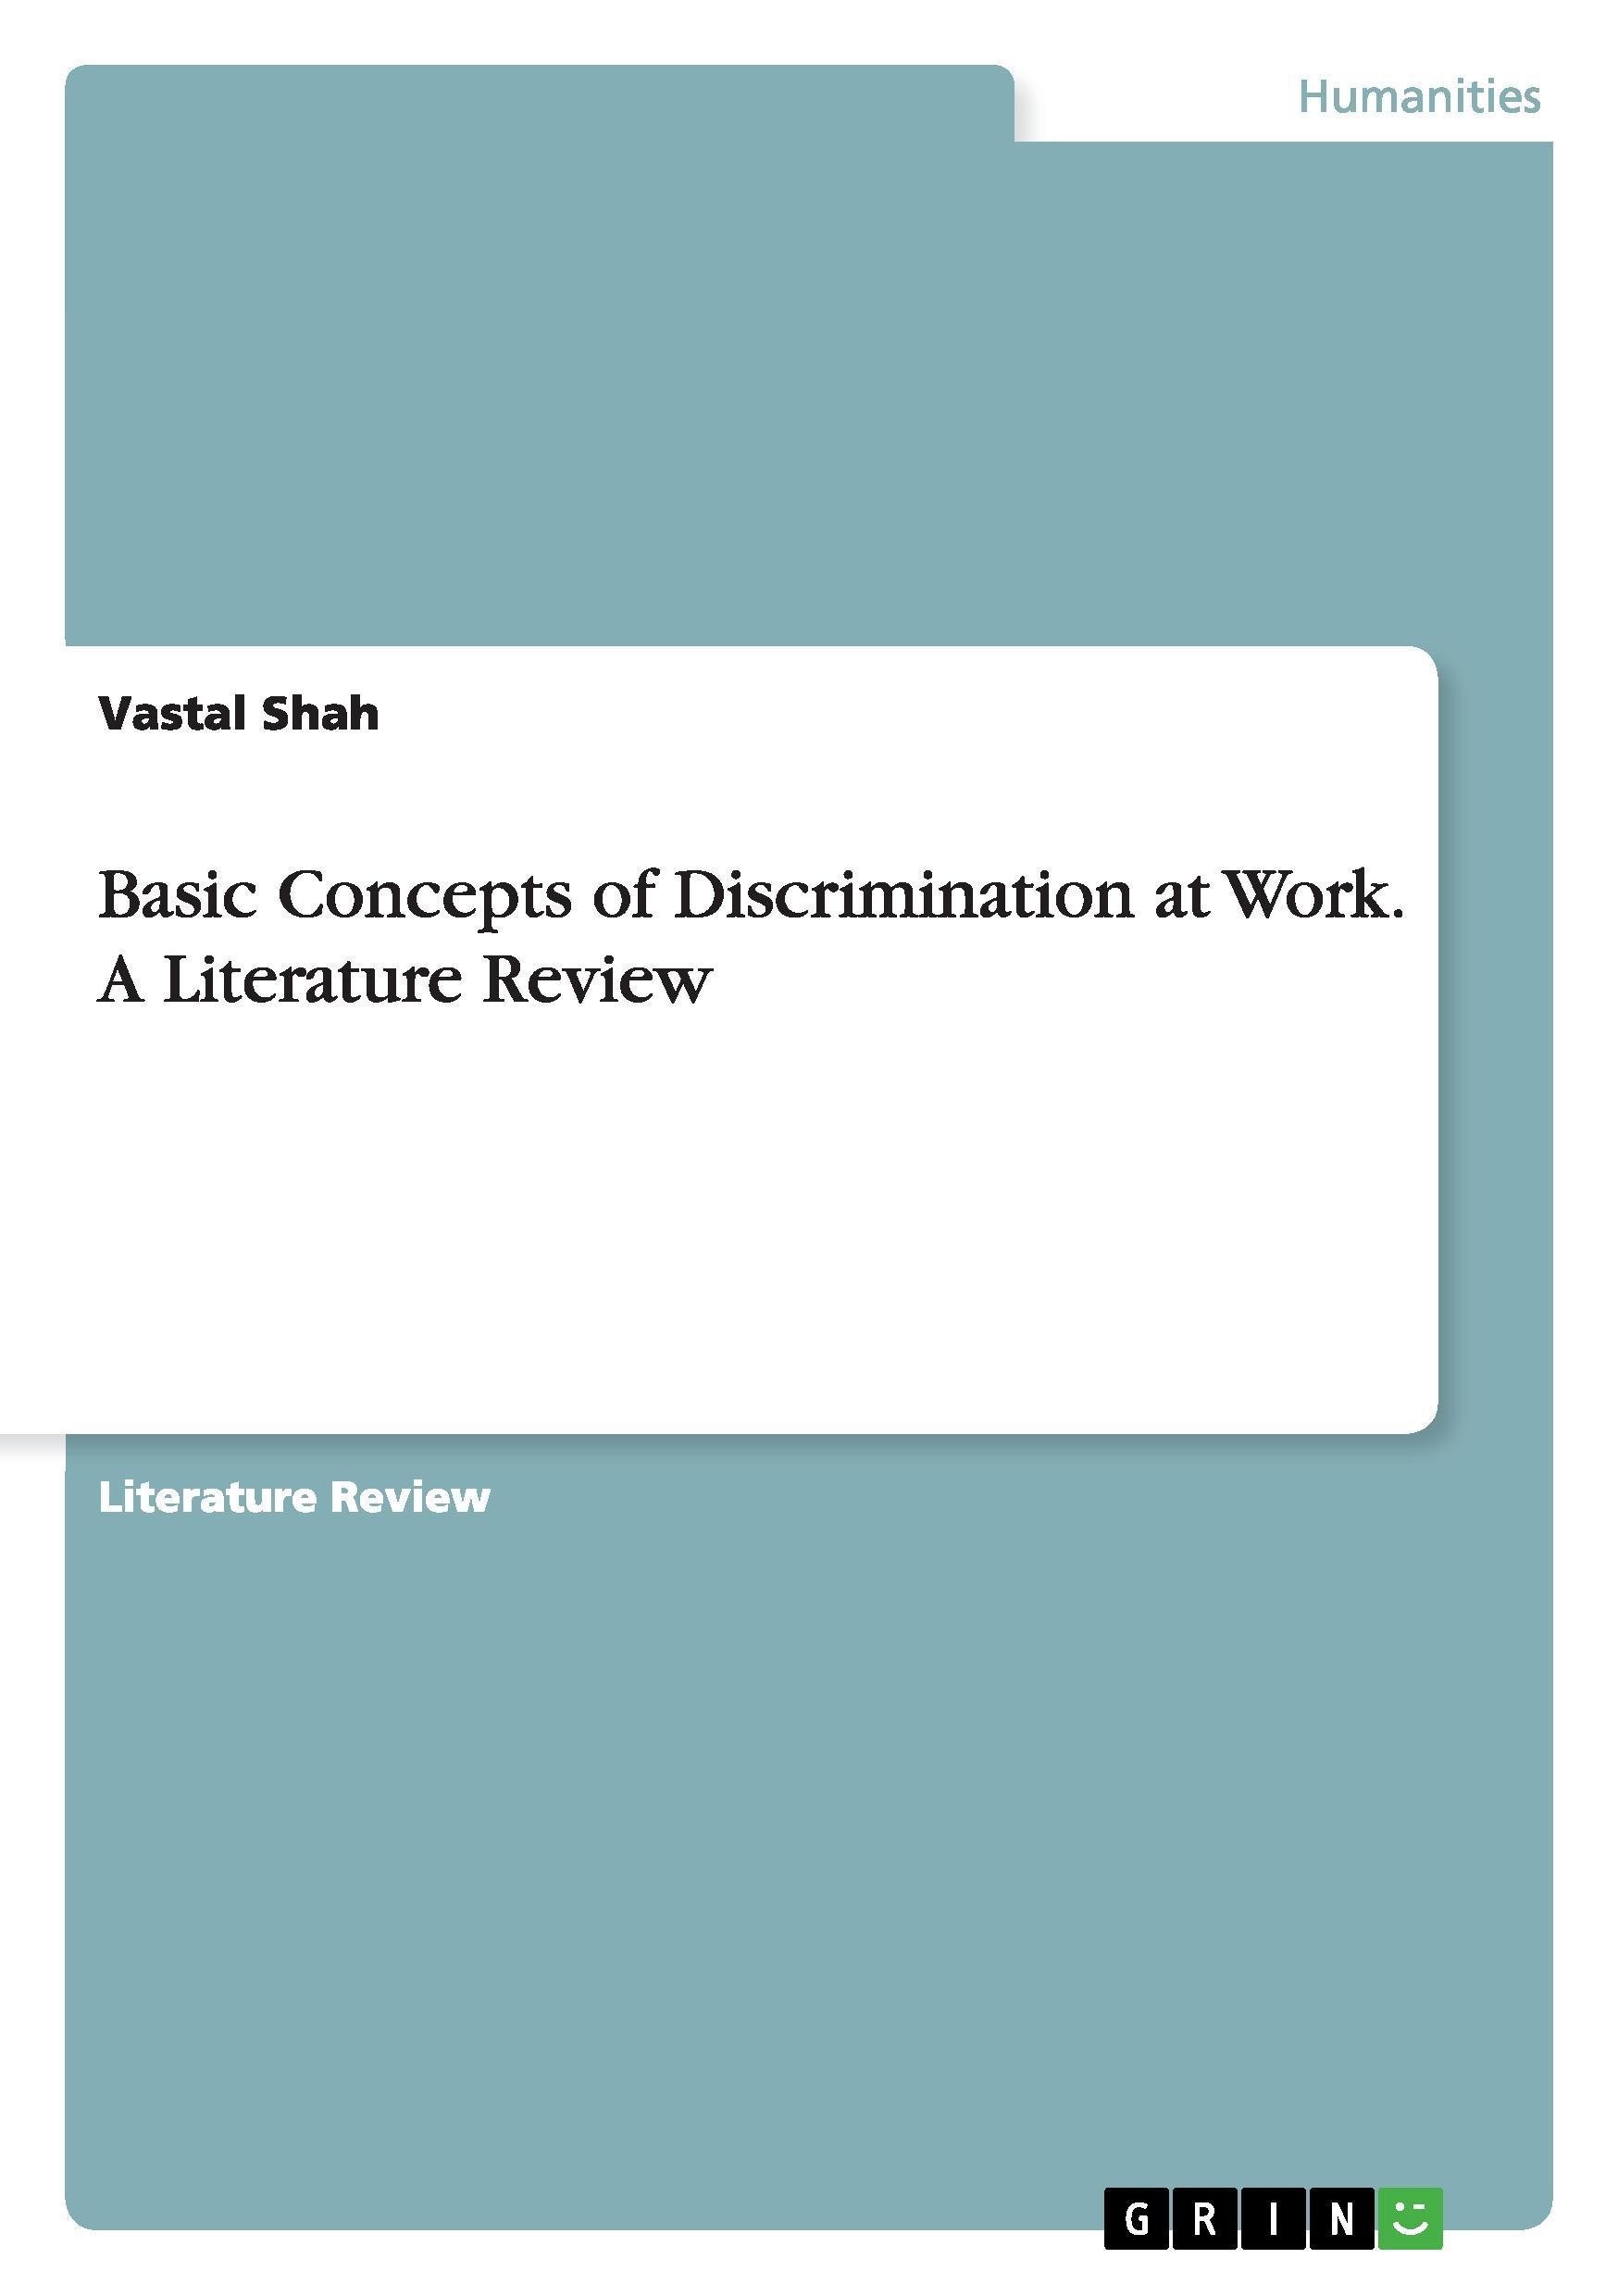 Basic Concepts of Discrimination at Work. A Literature Review Vastal Shah